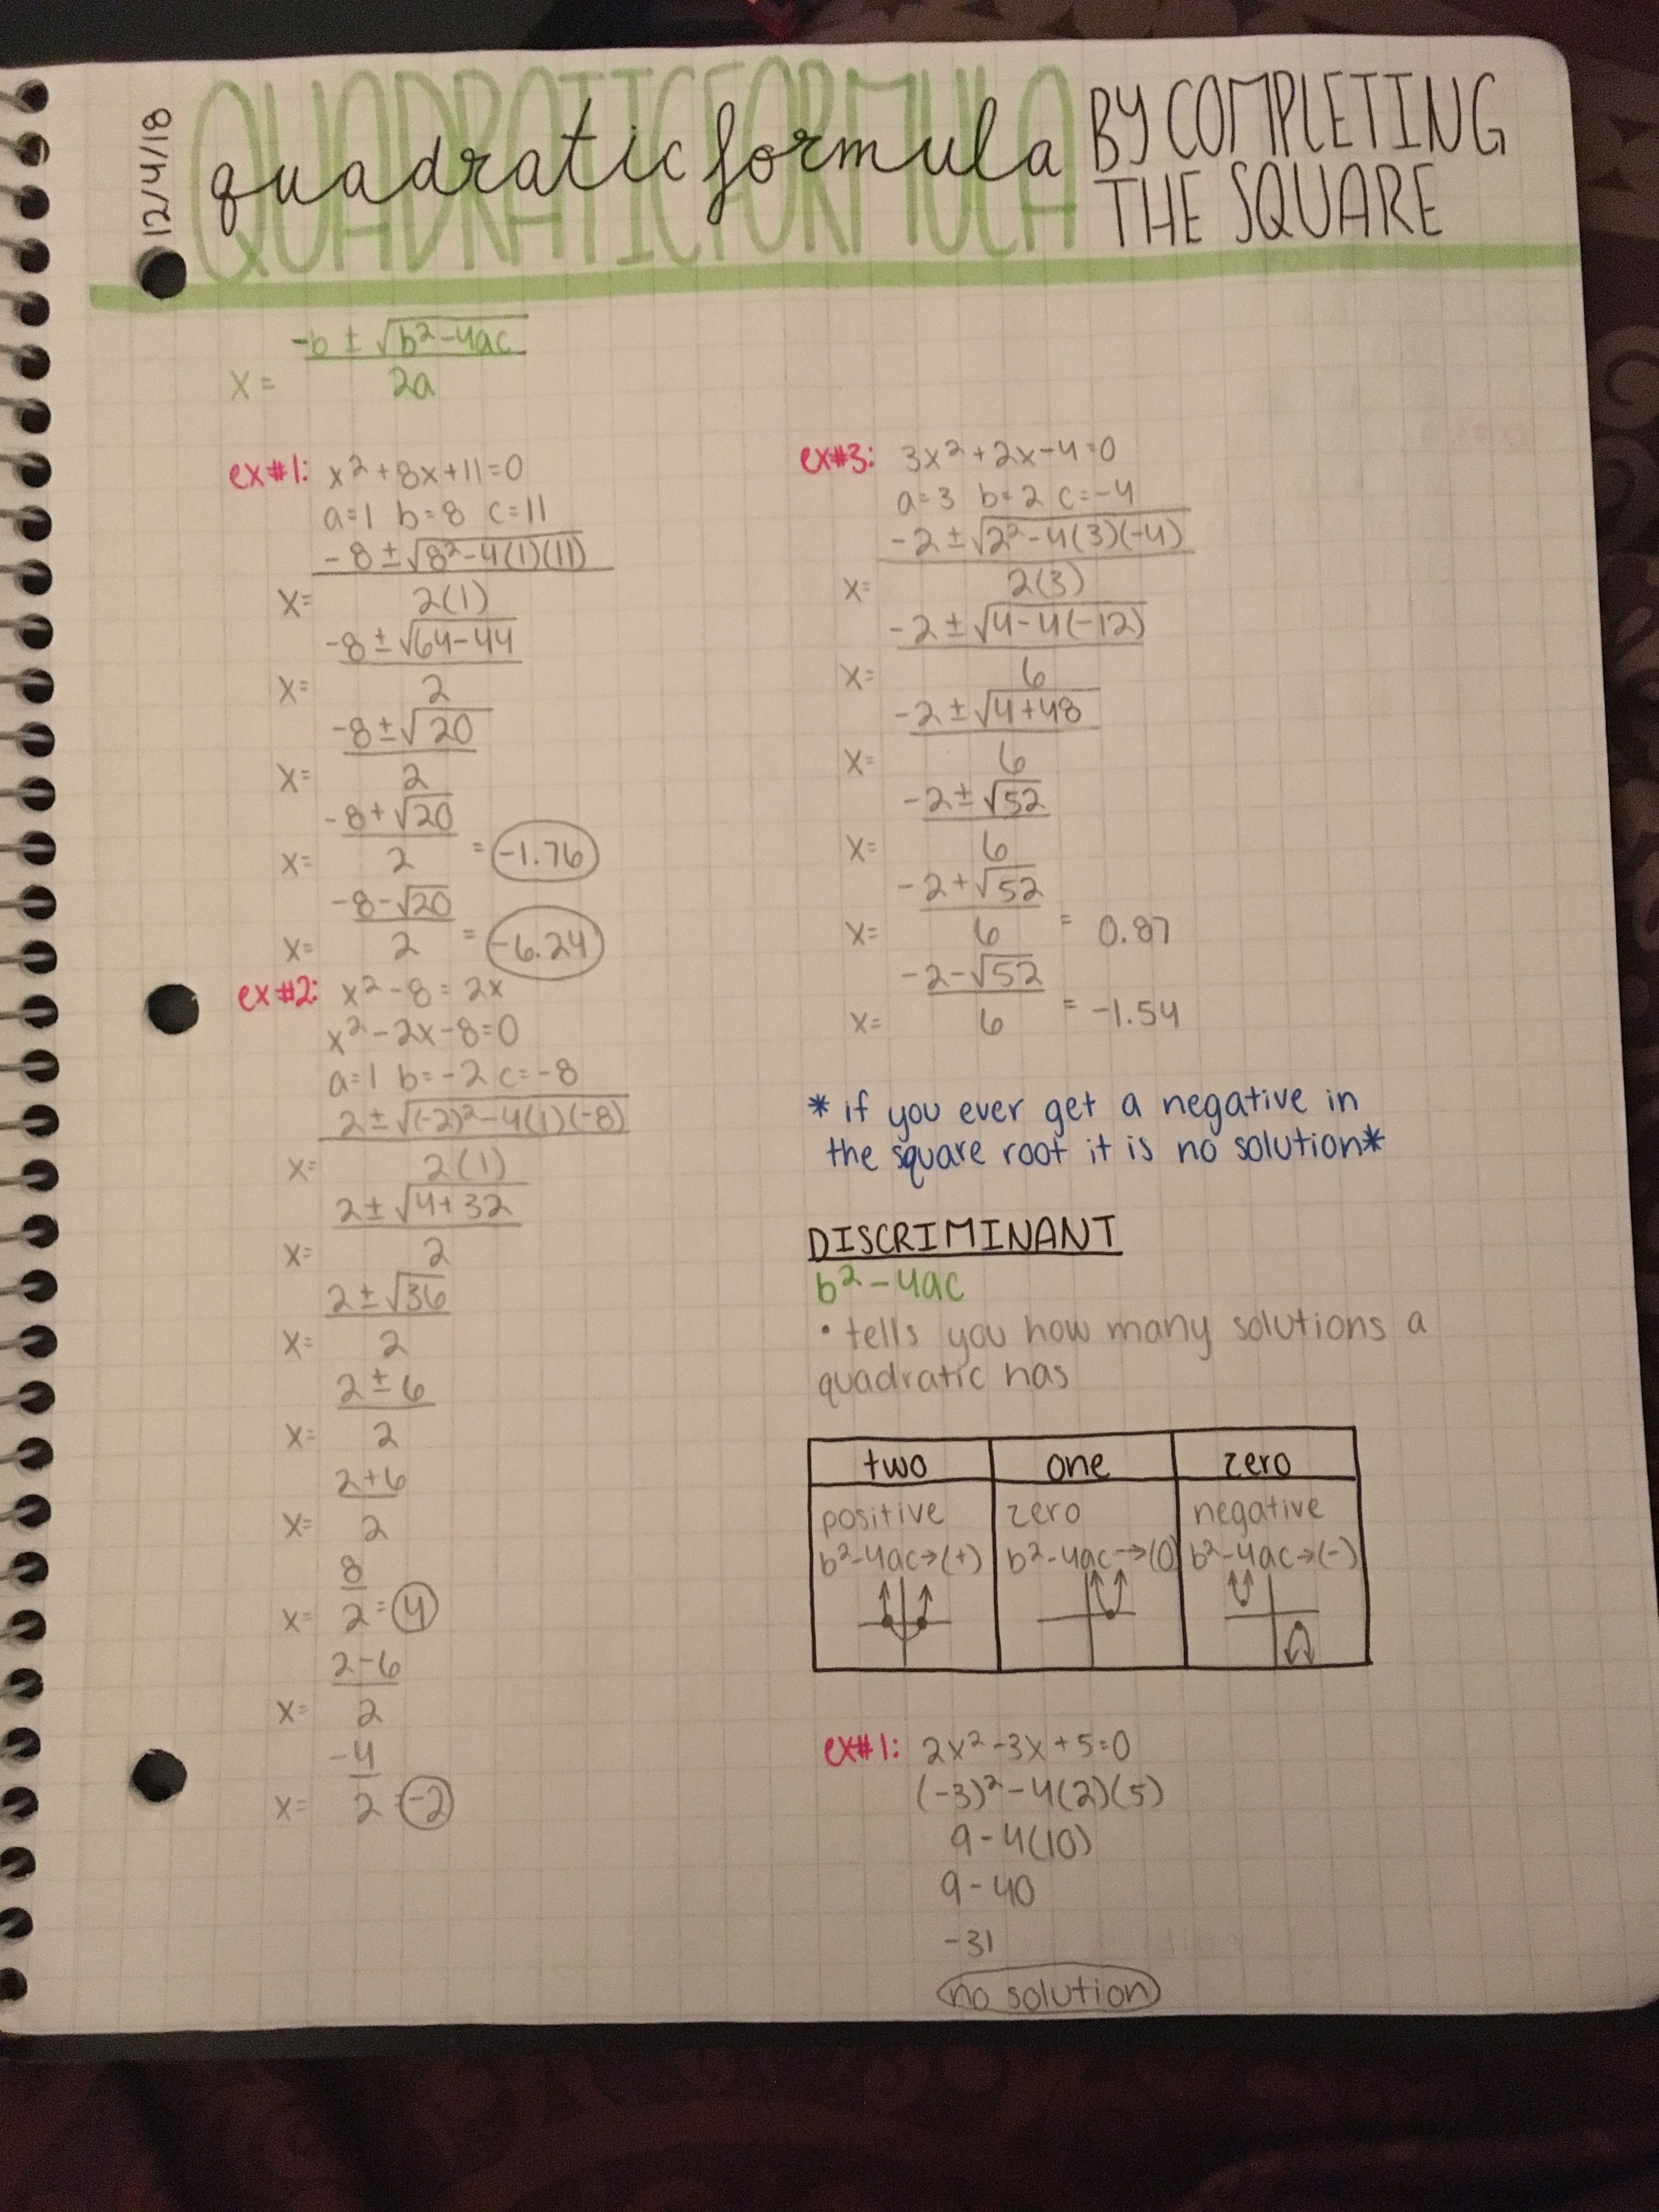 Algebra Quadratic Formula By Completing The Square Notes Math Notes School Algebra College Math Notes [ 4032 x 3024 Pixel ]